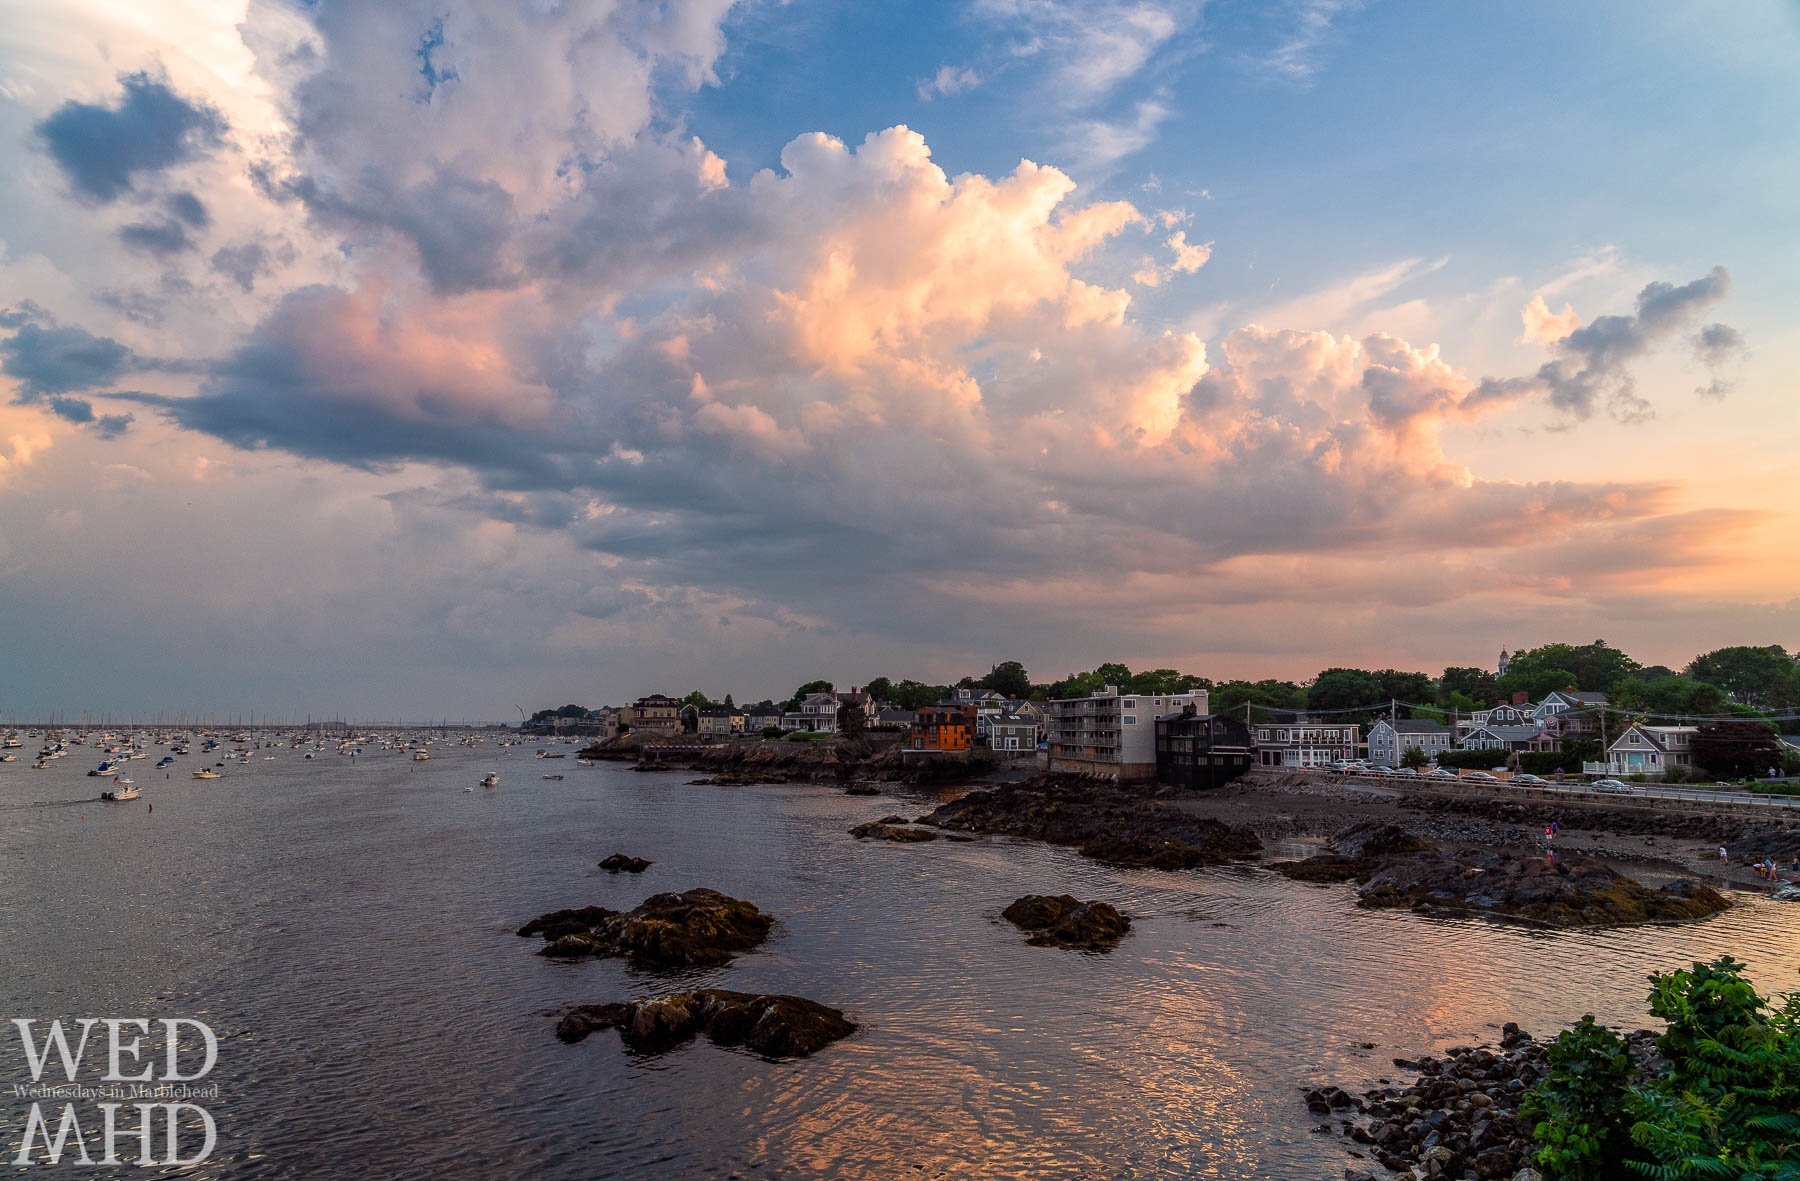 Sunset clouds reflect in the waters of Fort Beach on an early July evening in Marblehead